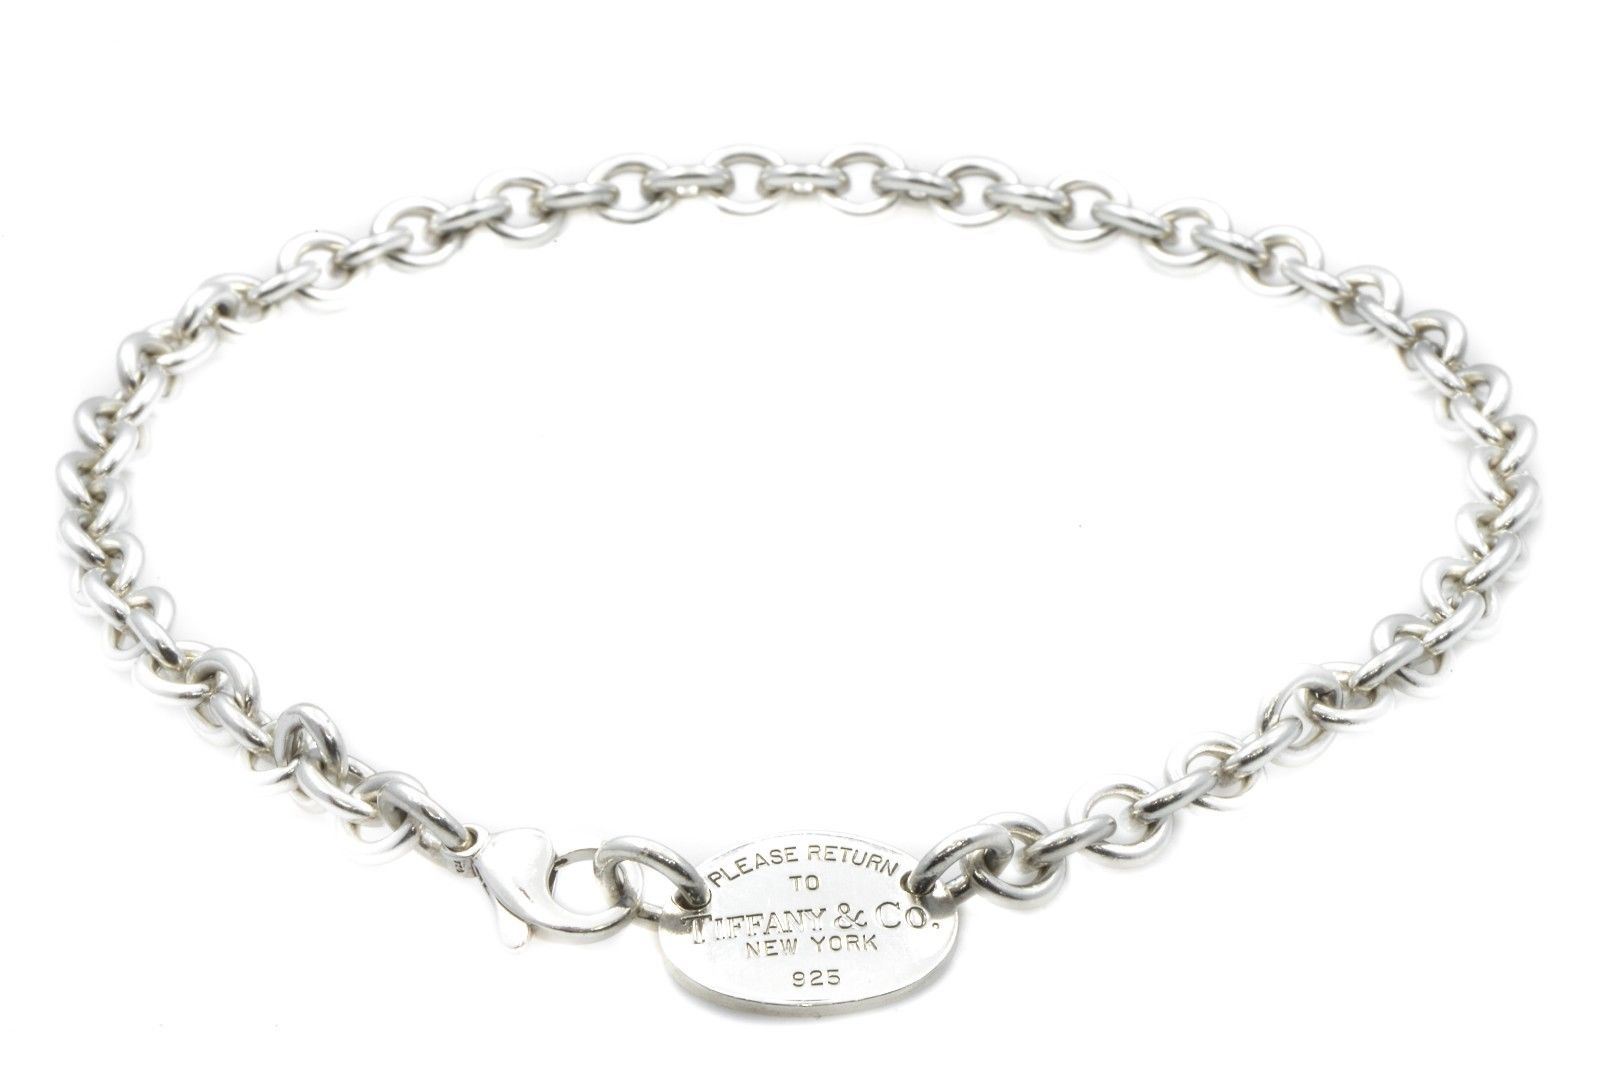 c8c24950c Details about Tiffany & Co. New York 925 Sterling Silver Chain Necklace 14